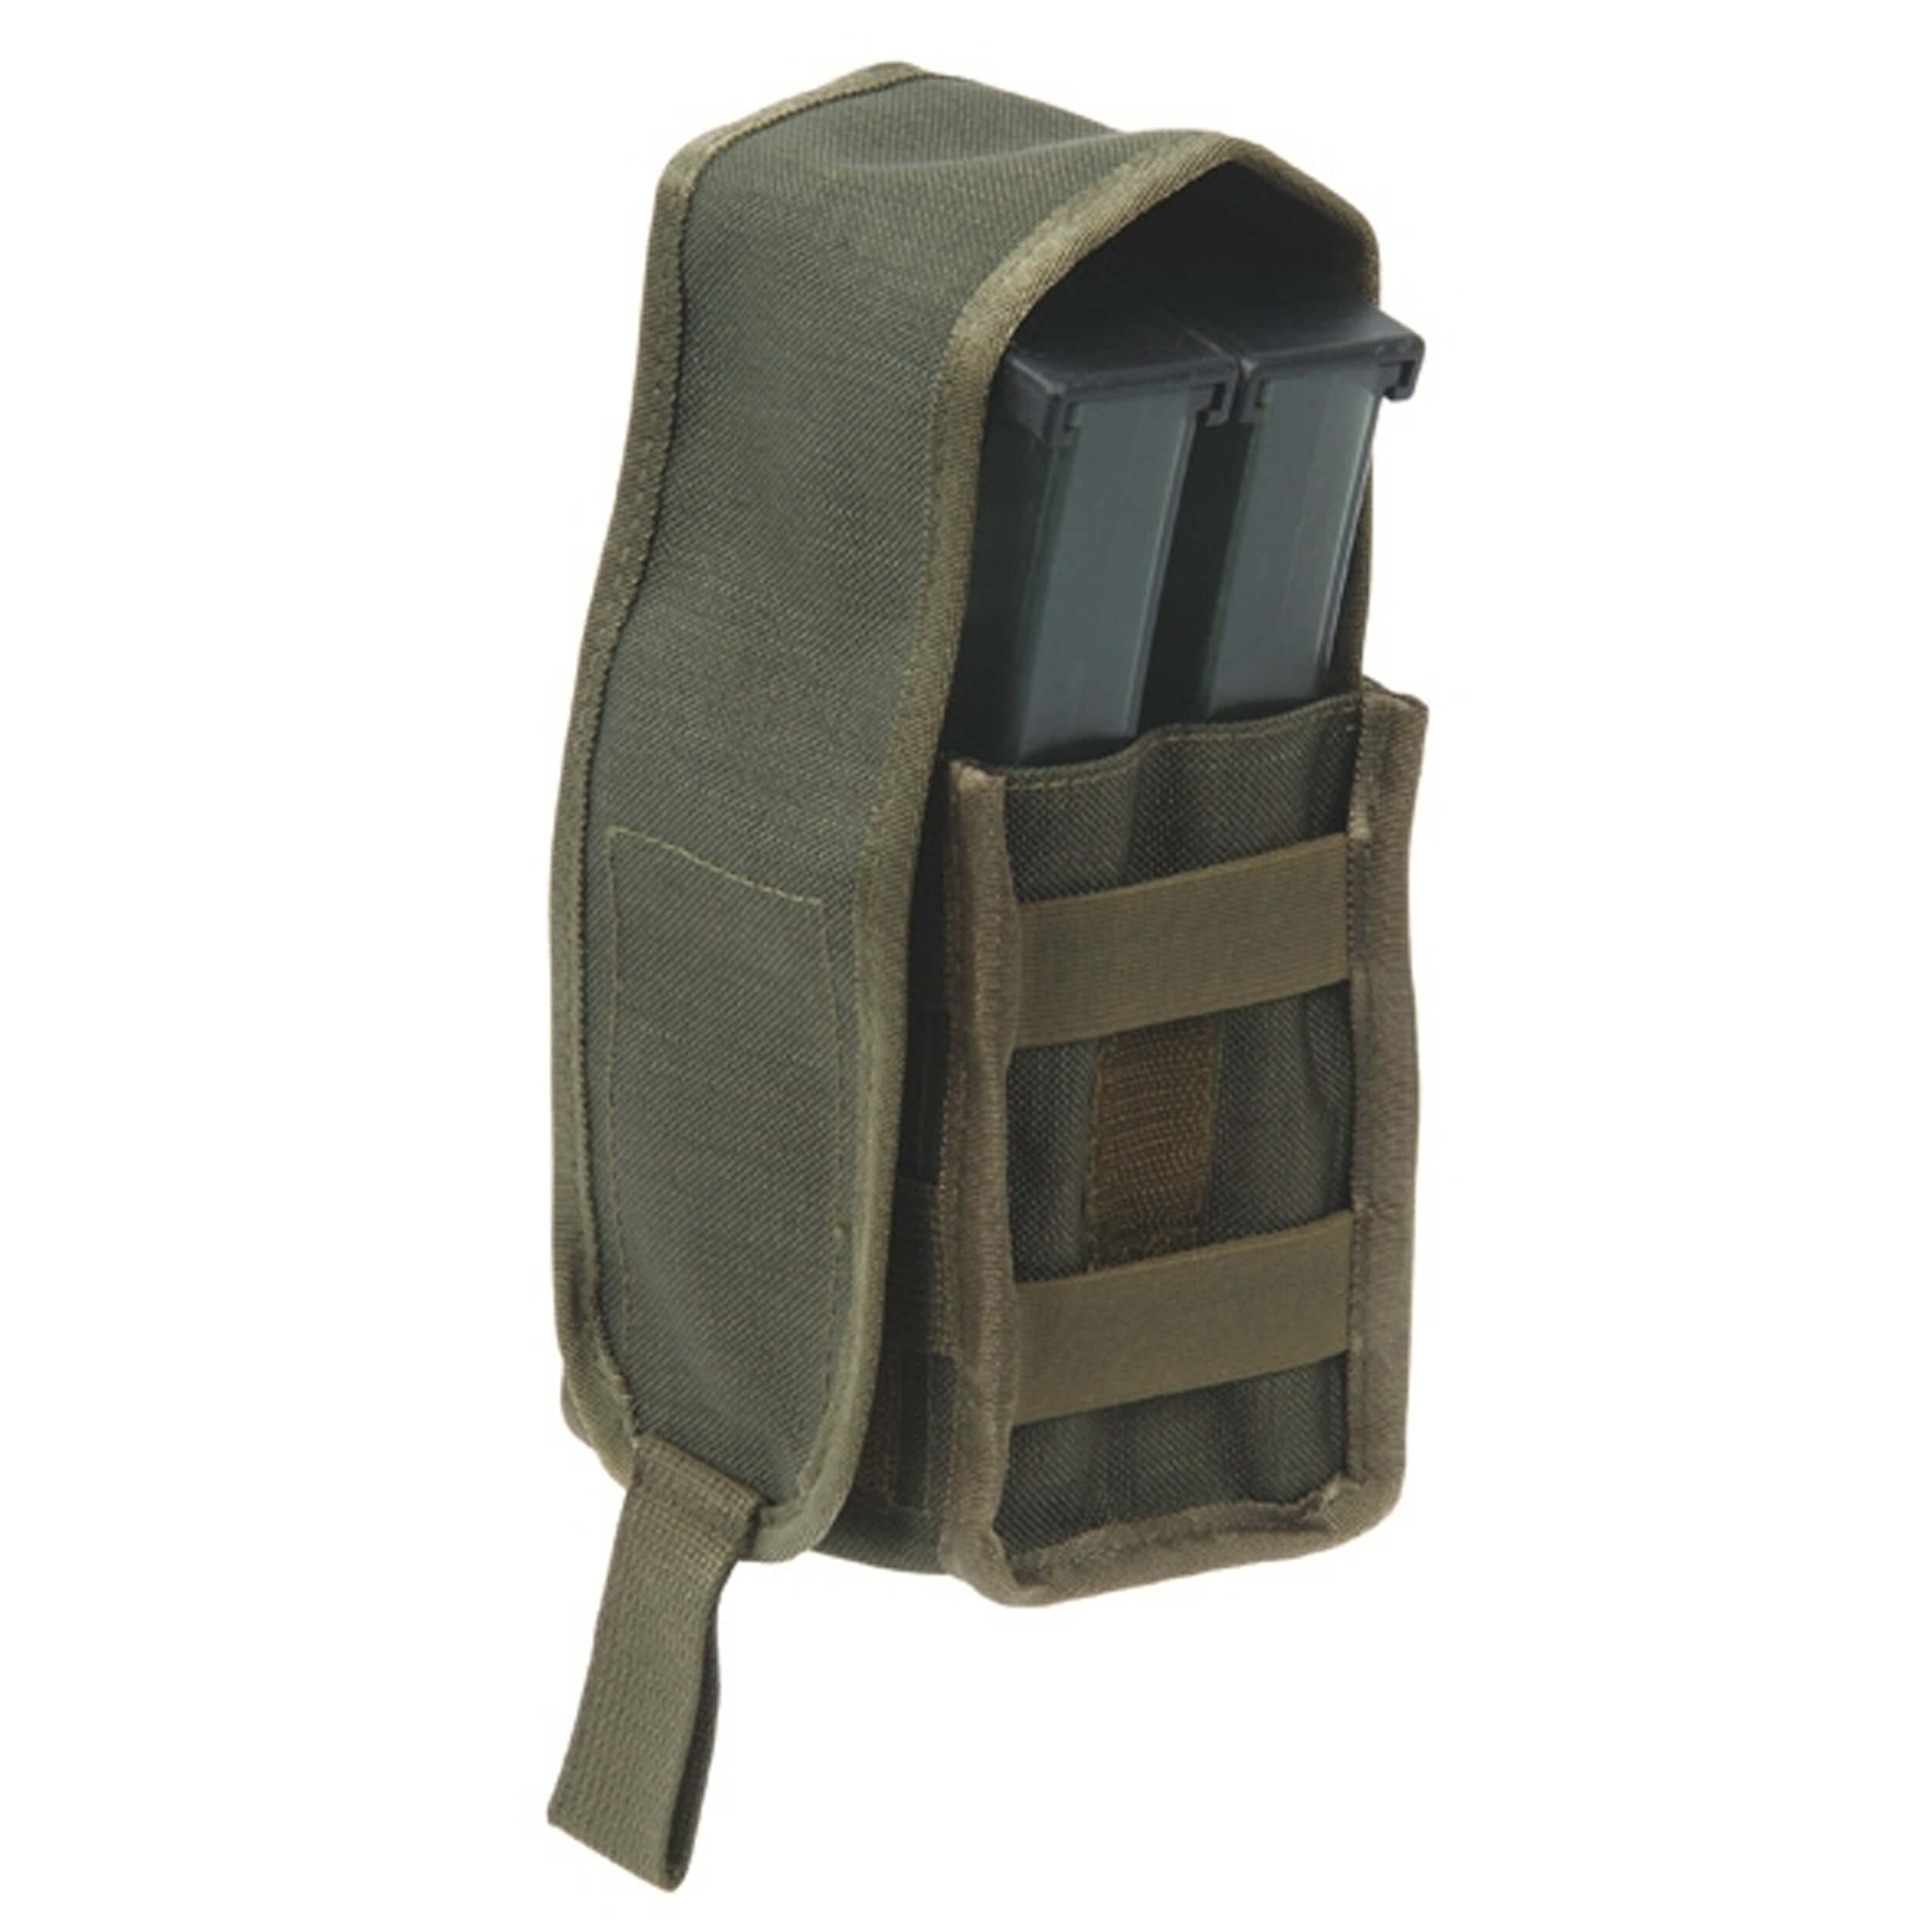 75Tactical Doppel Magazintasche G36/2 oliv